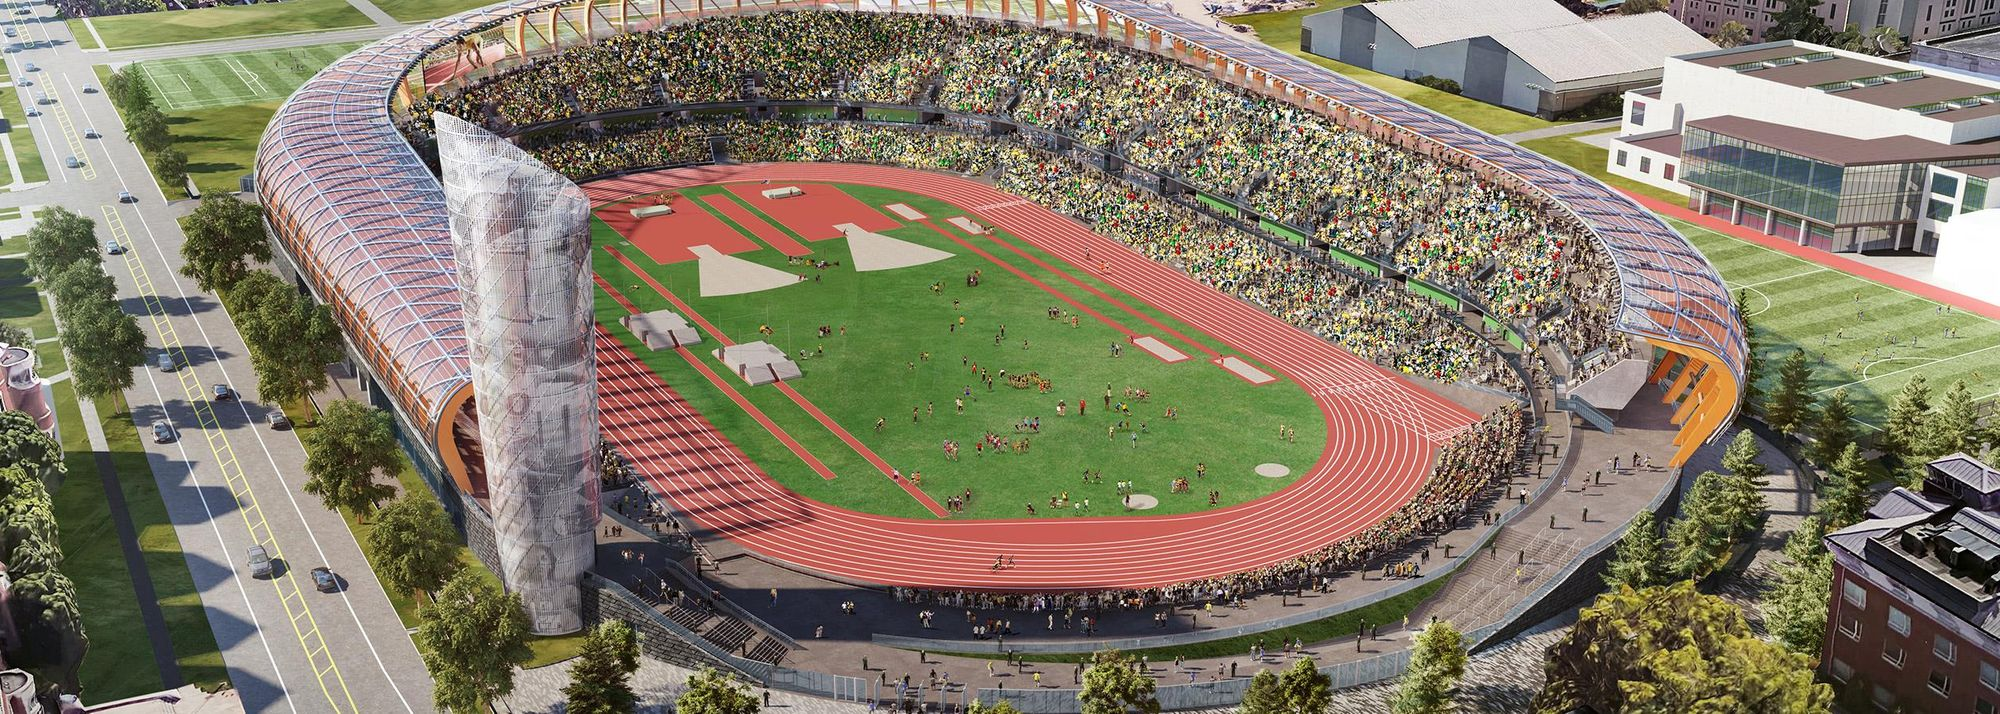 Action gets underway at Eugene's Hayward Field on 24 April